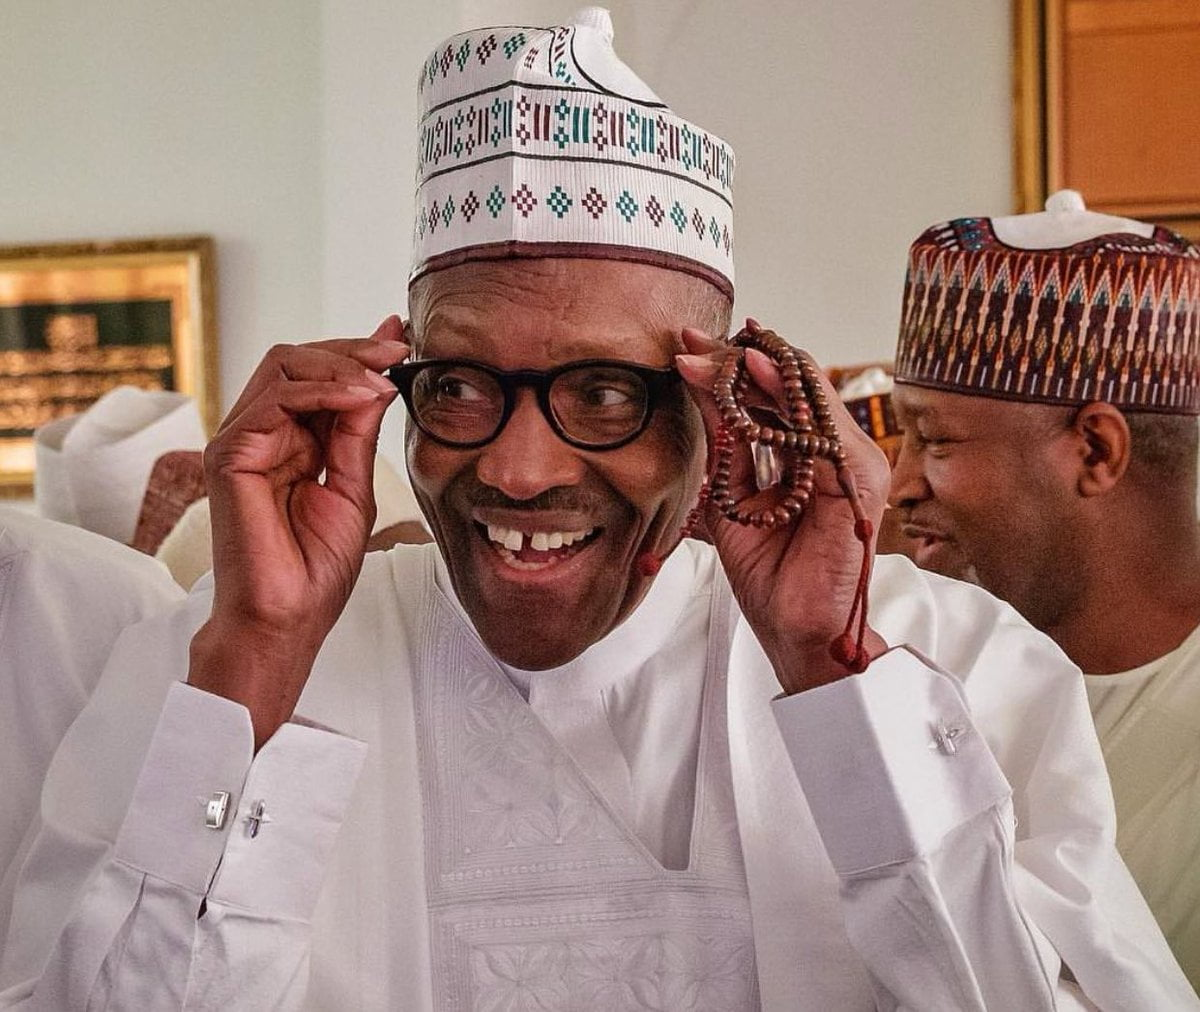 Buhari 2 - Independence: Youth NGO harps on modern agricultural practices to guarantee sector's future